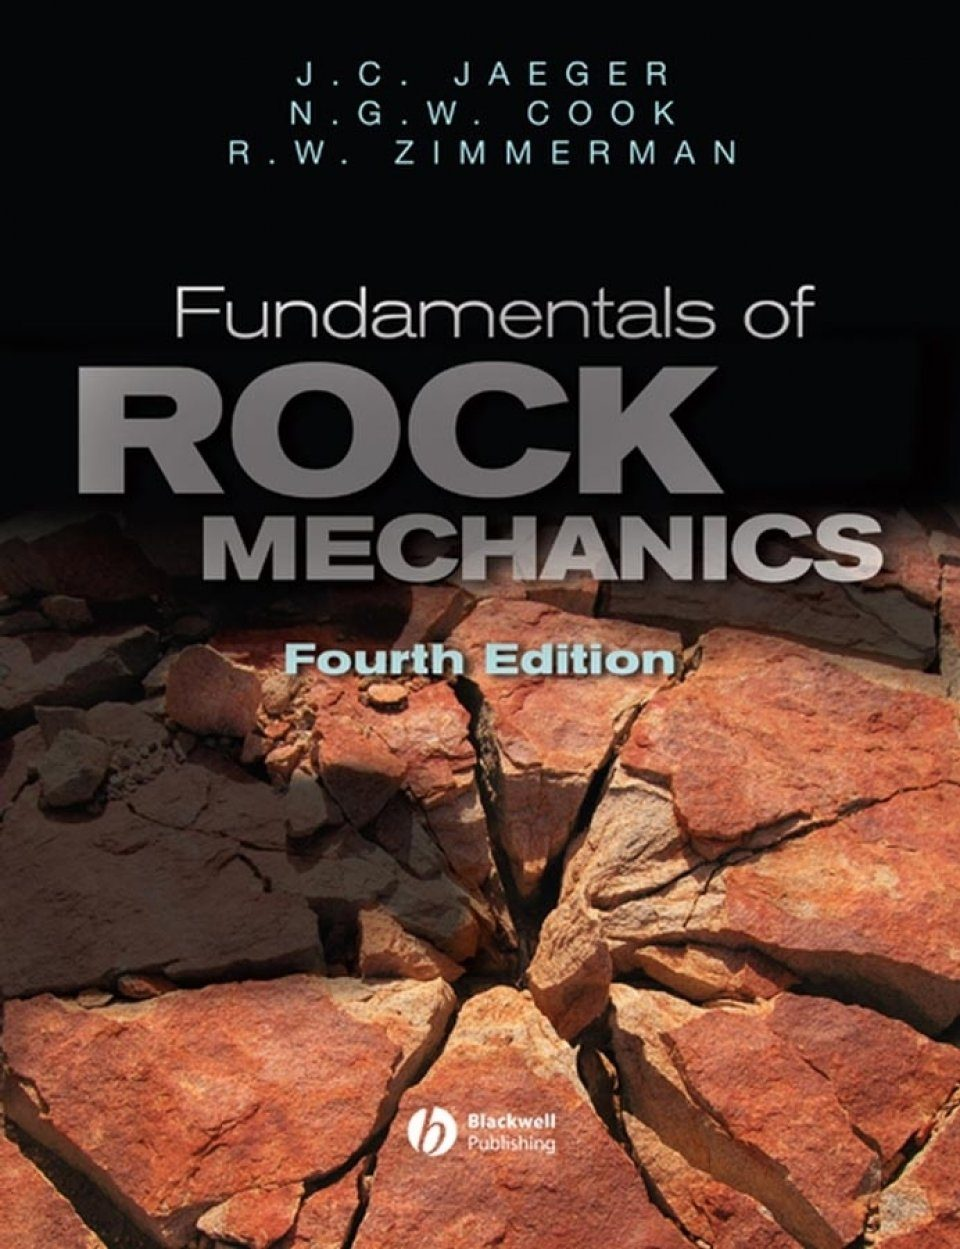 Fundamentals of Rock Mechanics